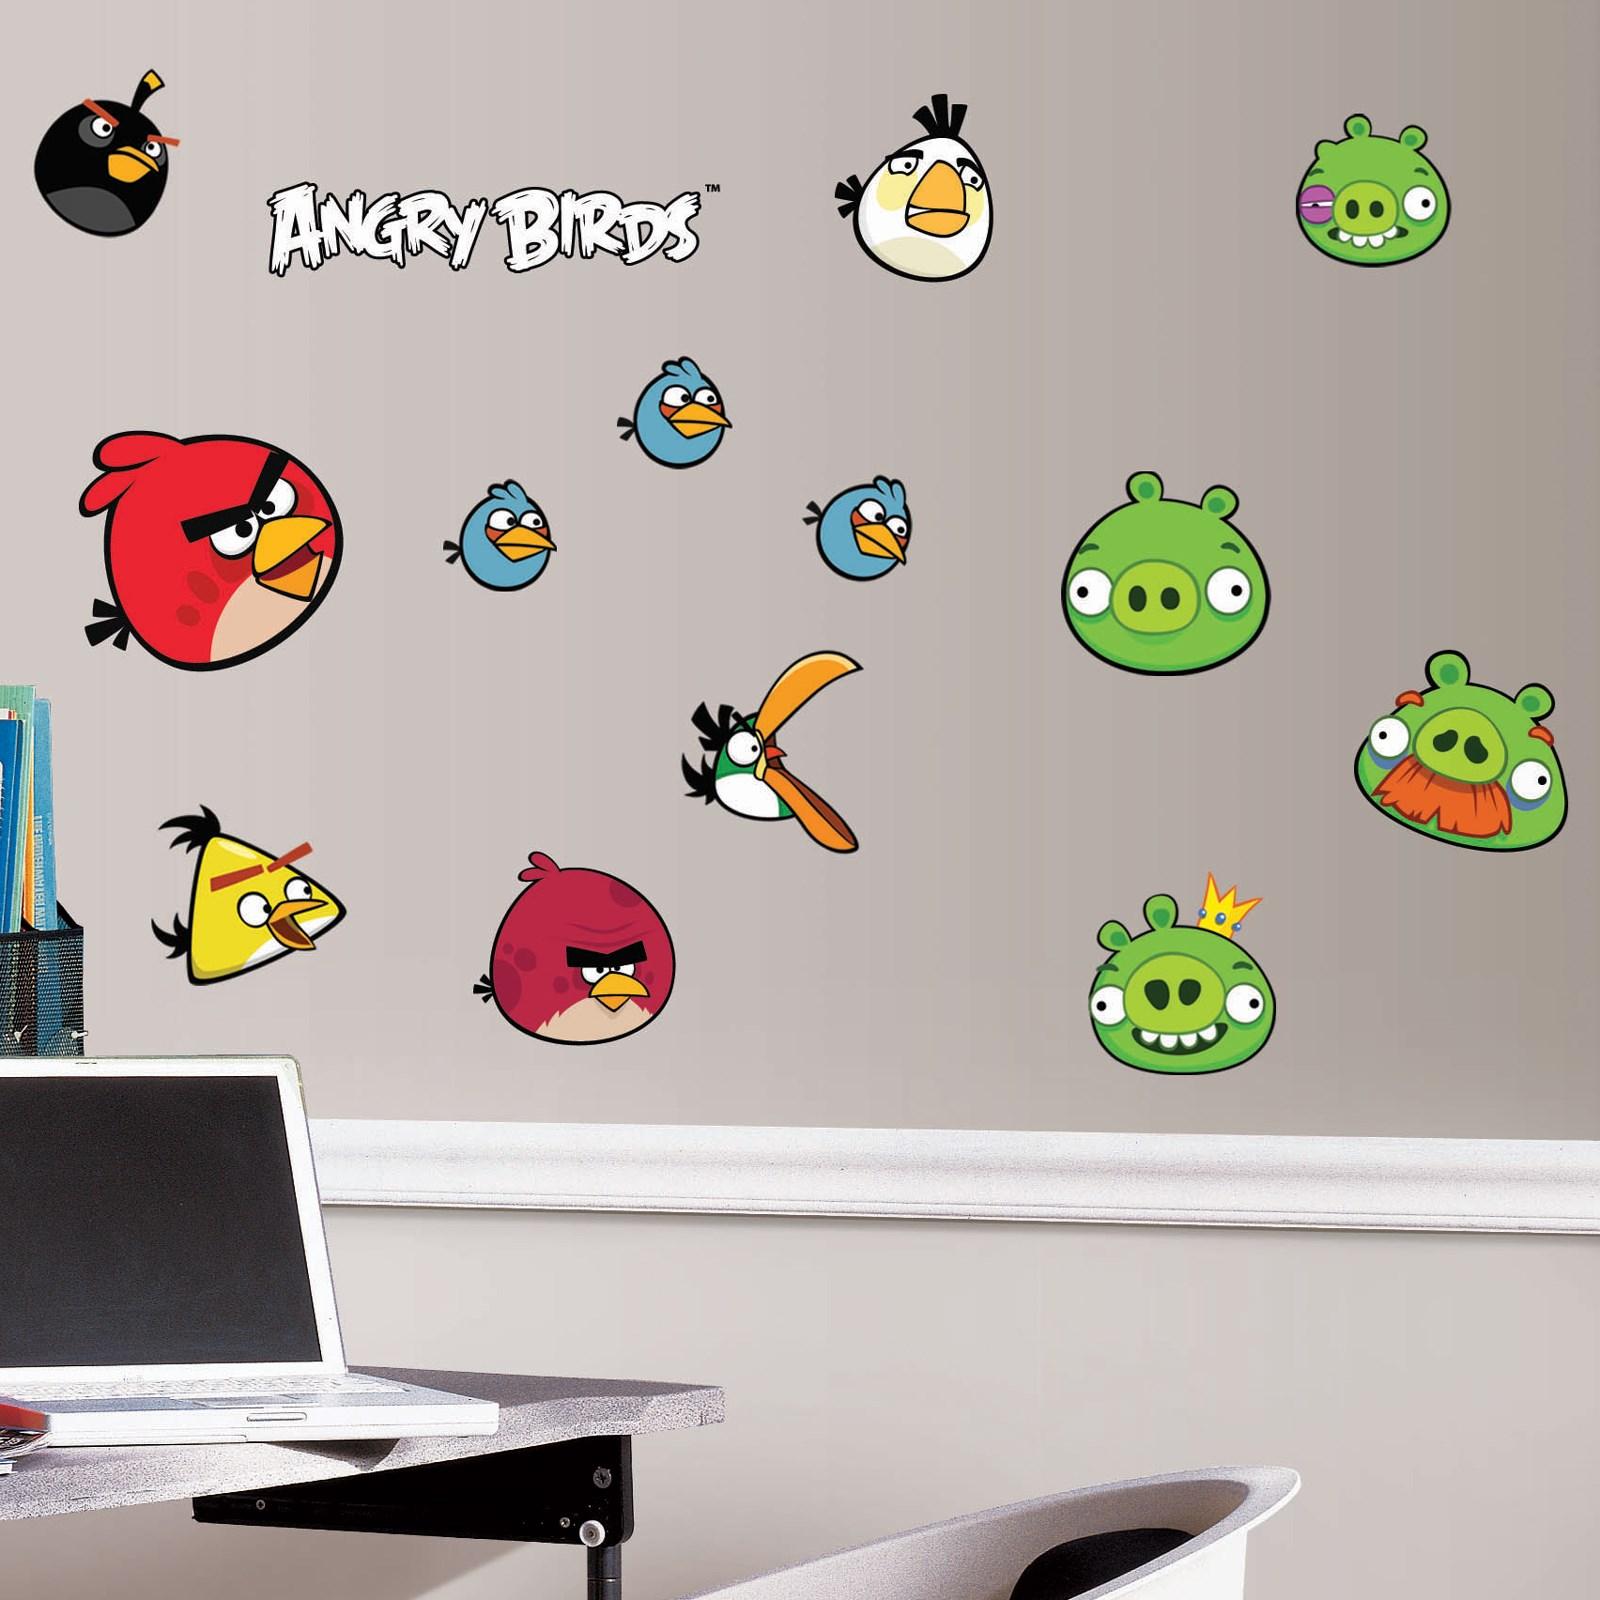 Image of Angry Birds Removable Wall Decorations